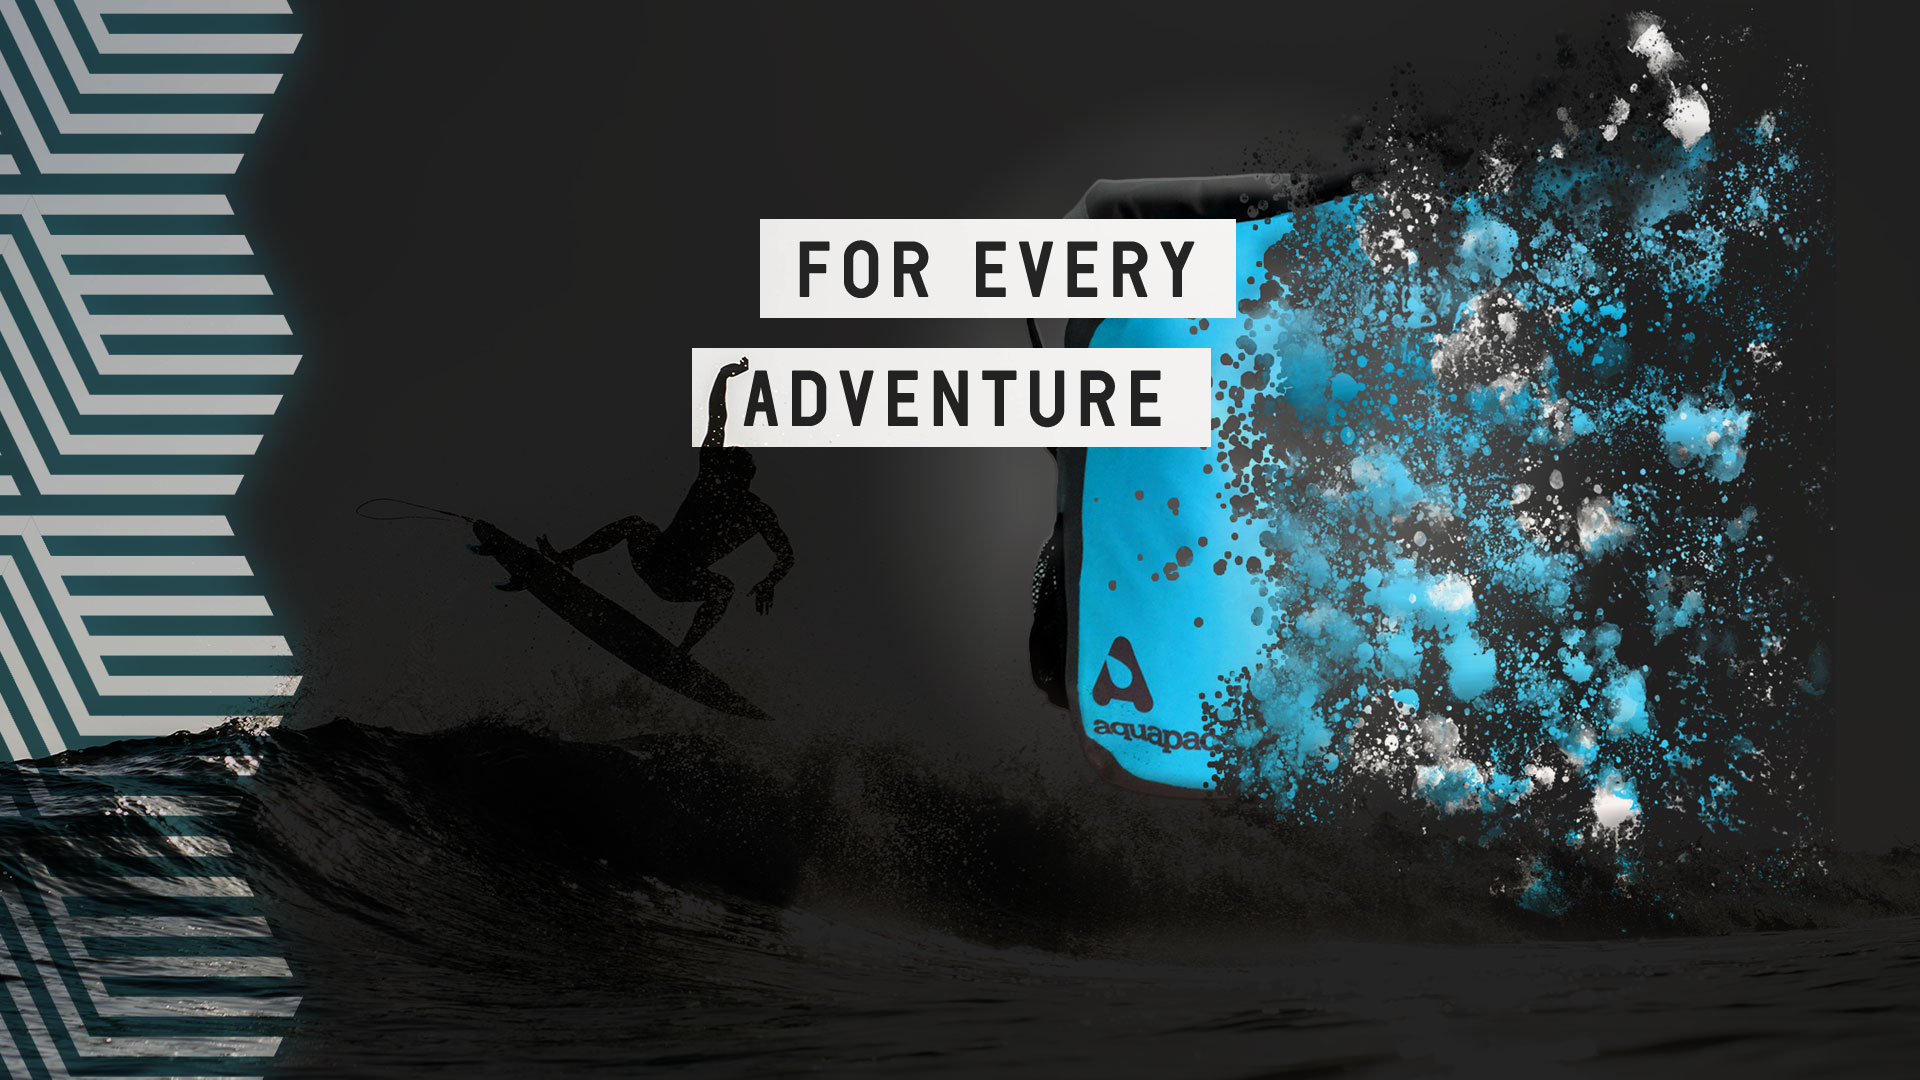 Aquapac for all your adventures